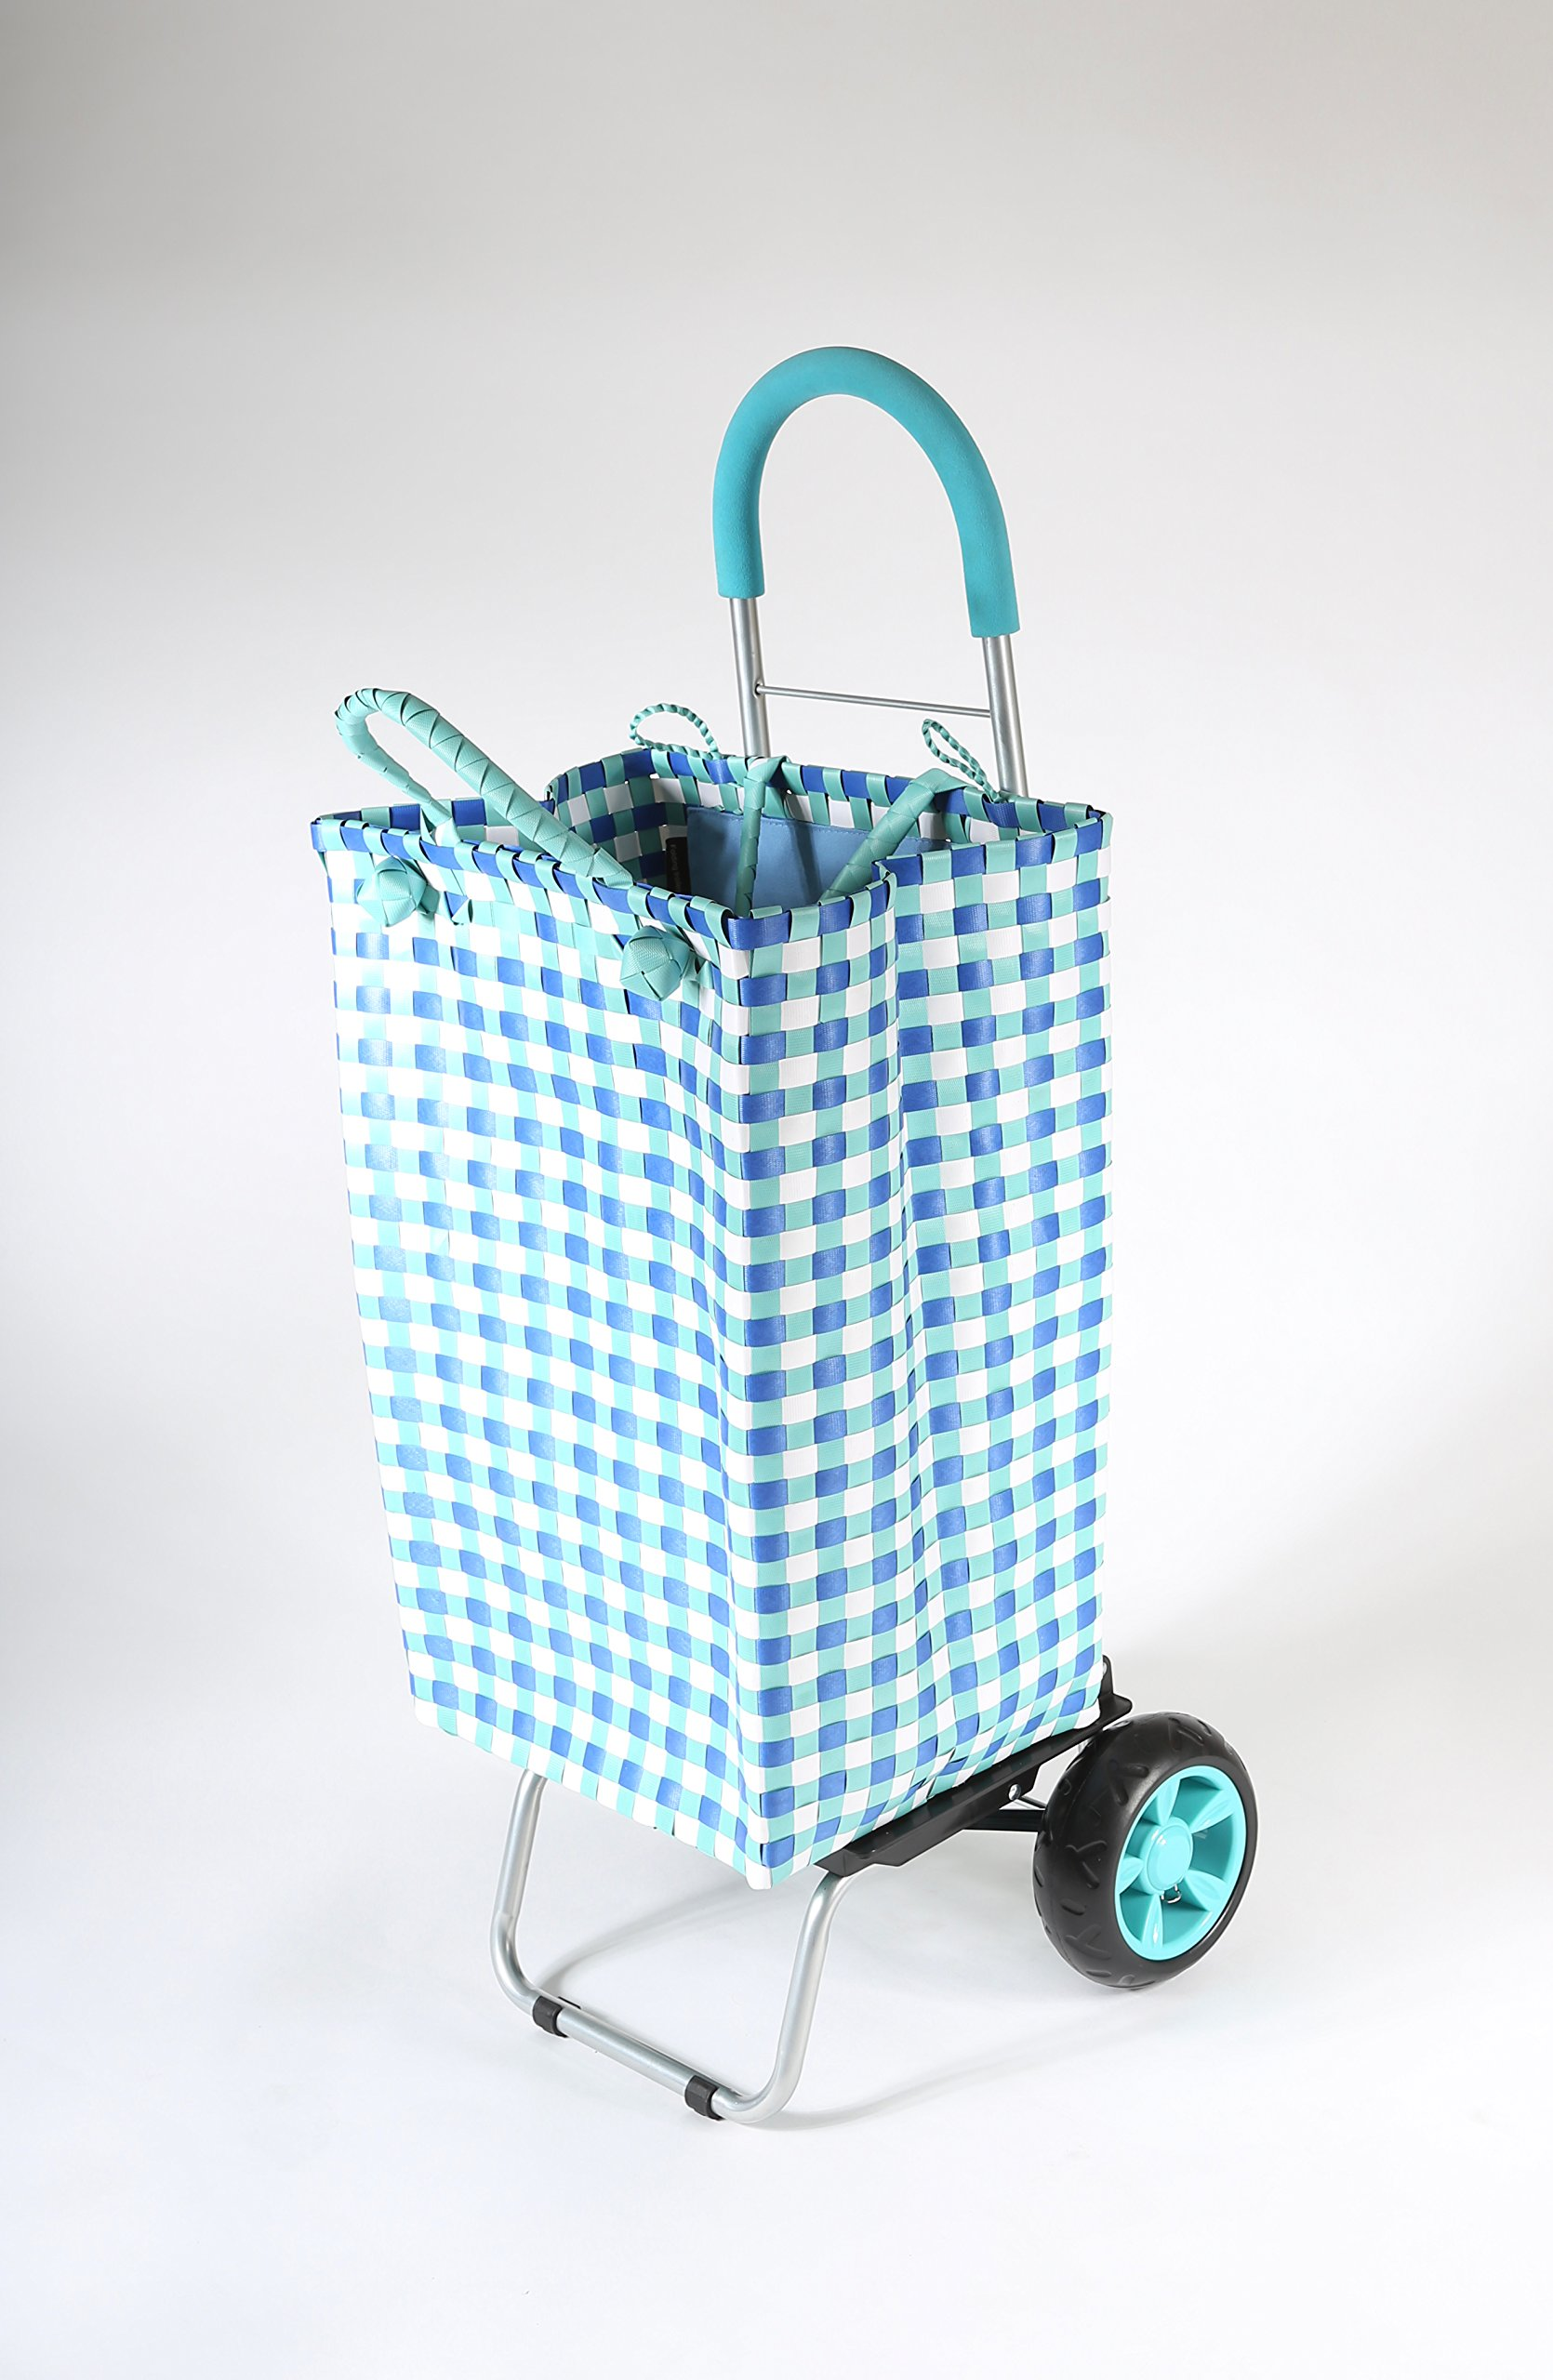 dbest products Trolley Dolly Basket Weave Tote, Blue Shopping Grocery Foldable Cart Picnic Beach by dbest products (Image #2)